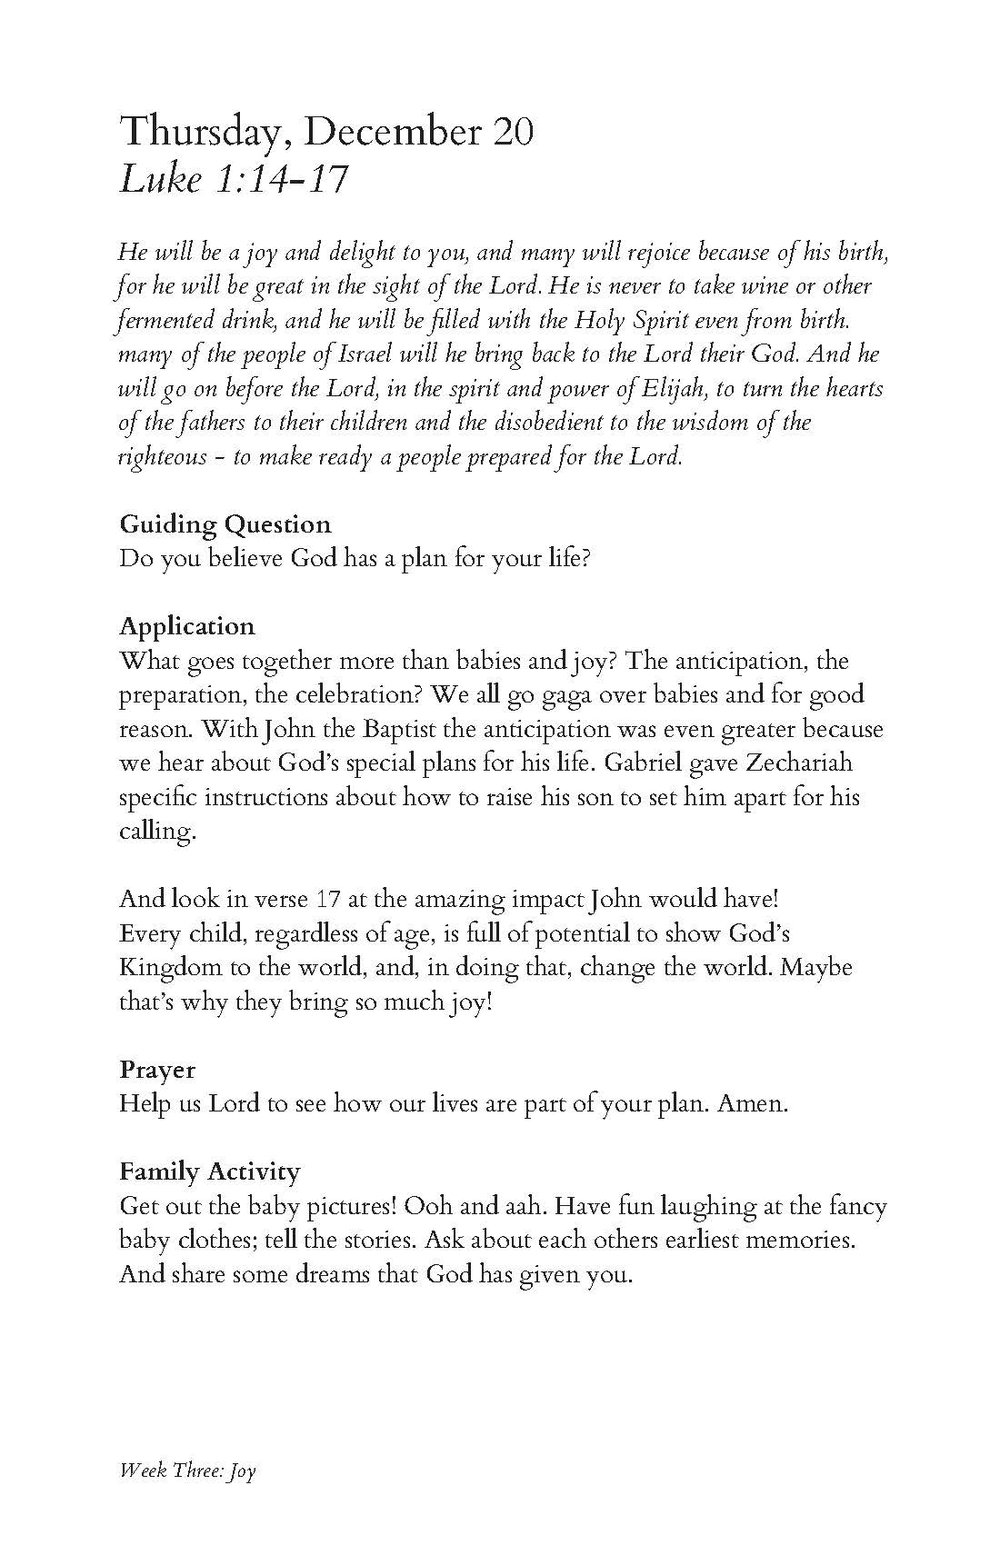 Final Advent Guide - for digital publication_Page_26.jpg